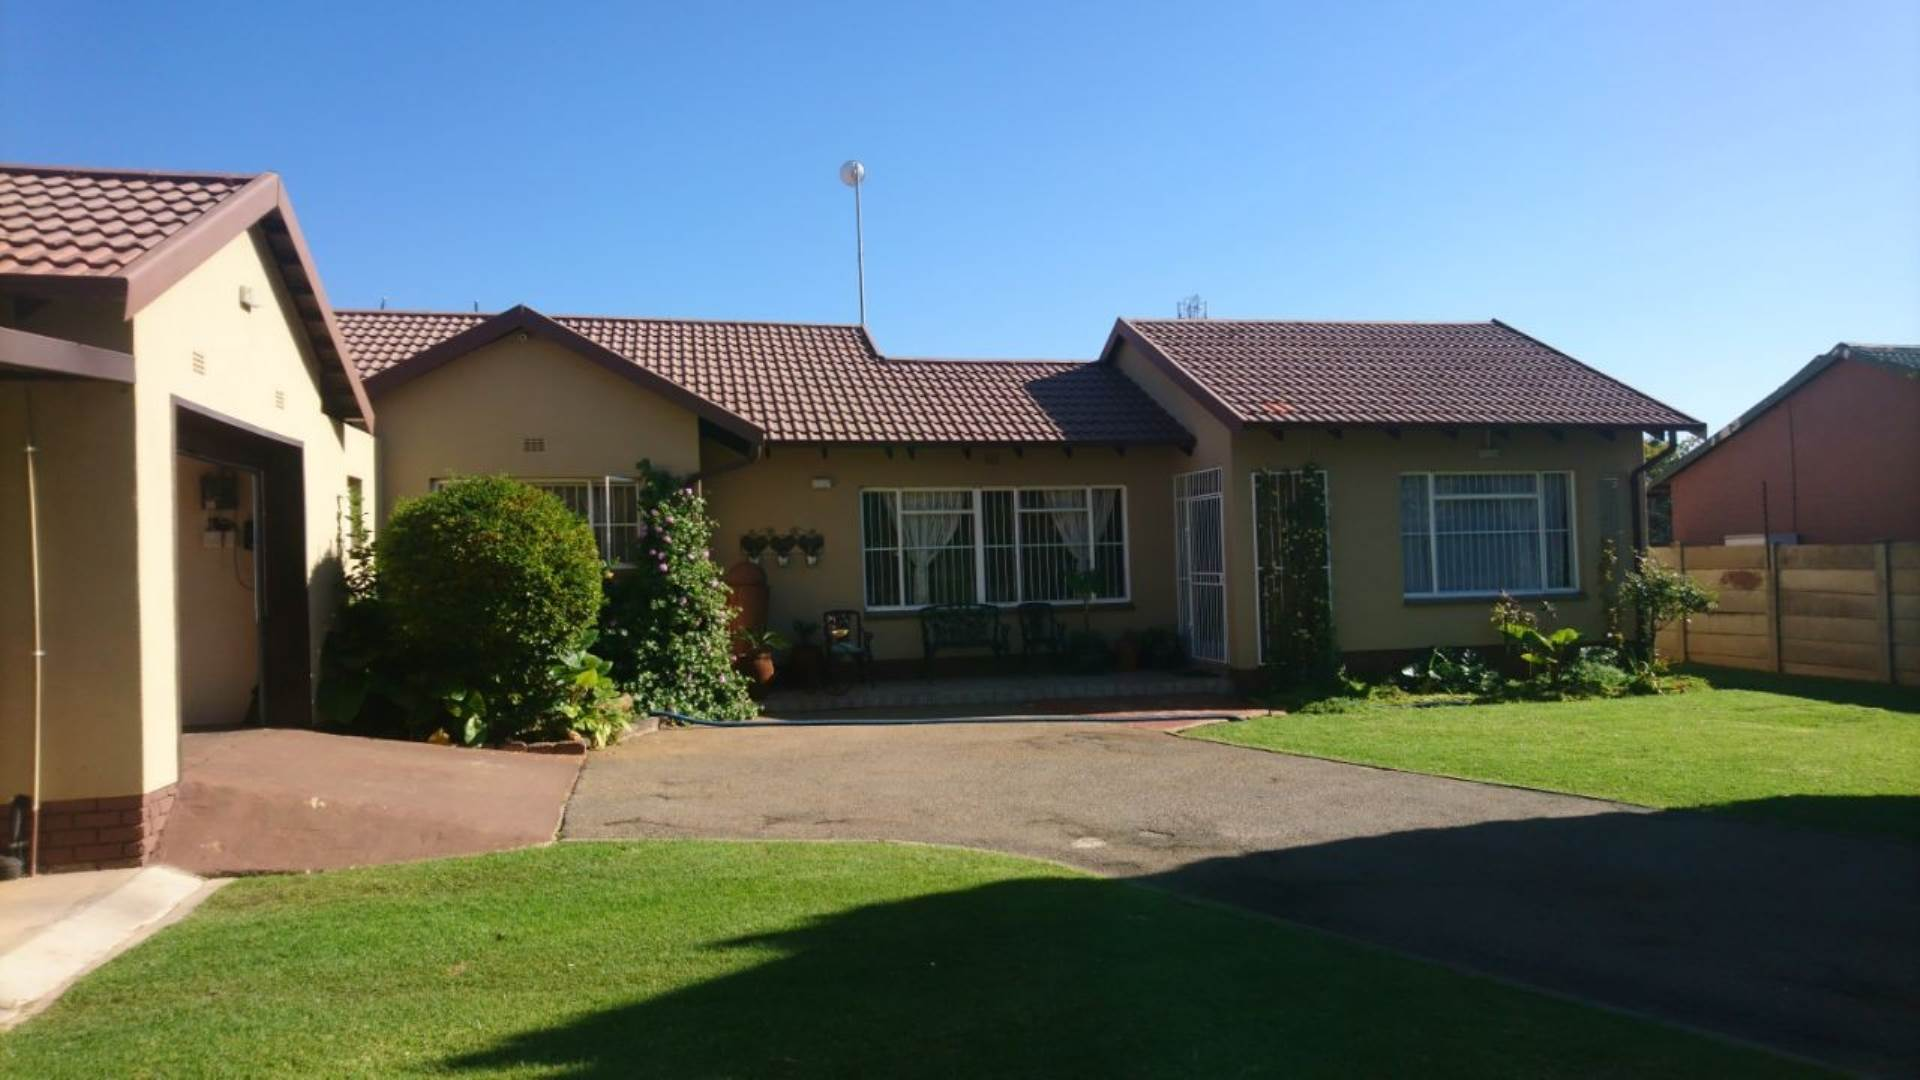 3 BedroomHouse For Sale In Helikonpark